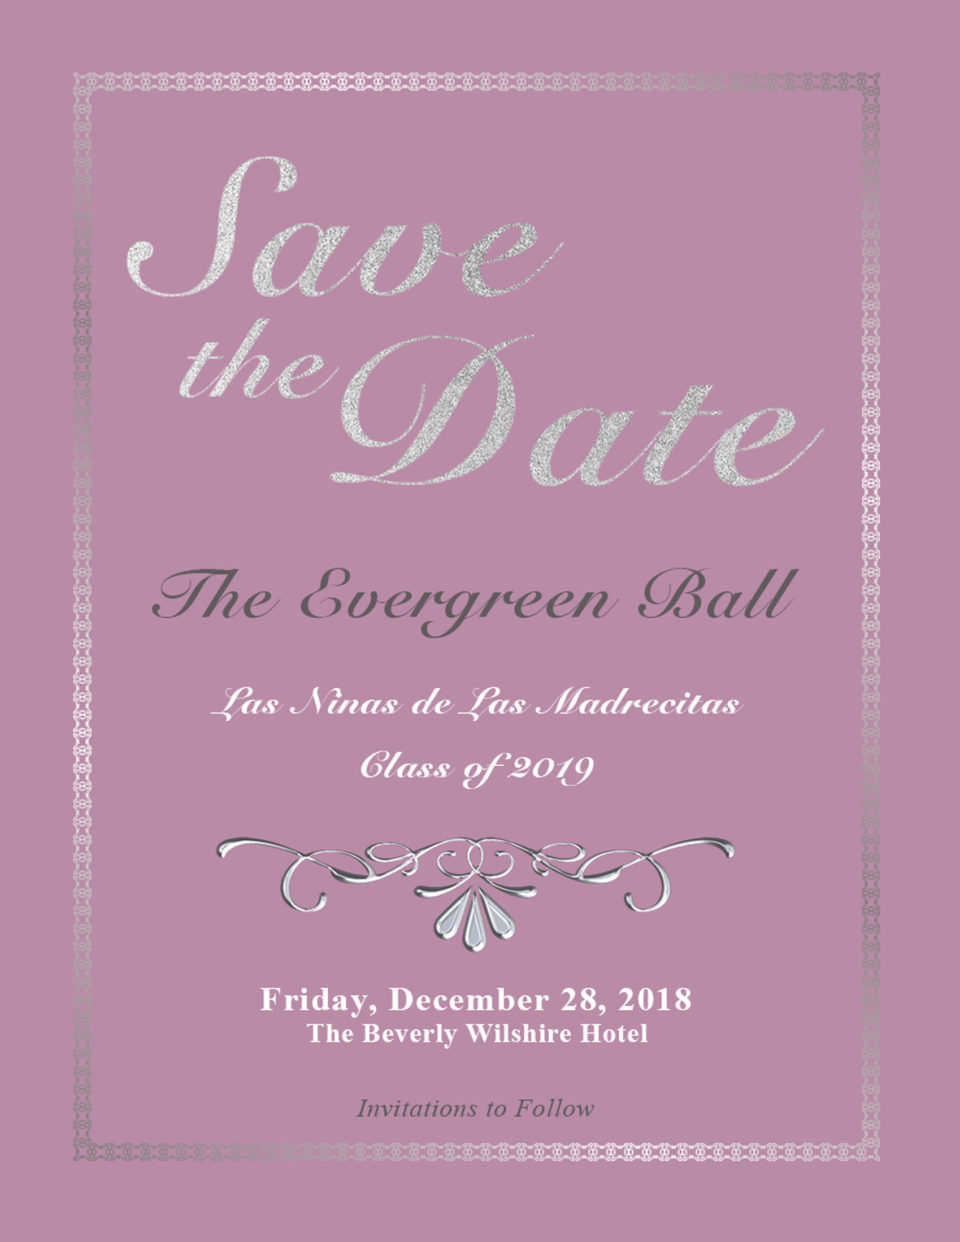 Evergreen Ball Class of 2019 Save the Date